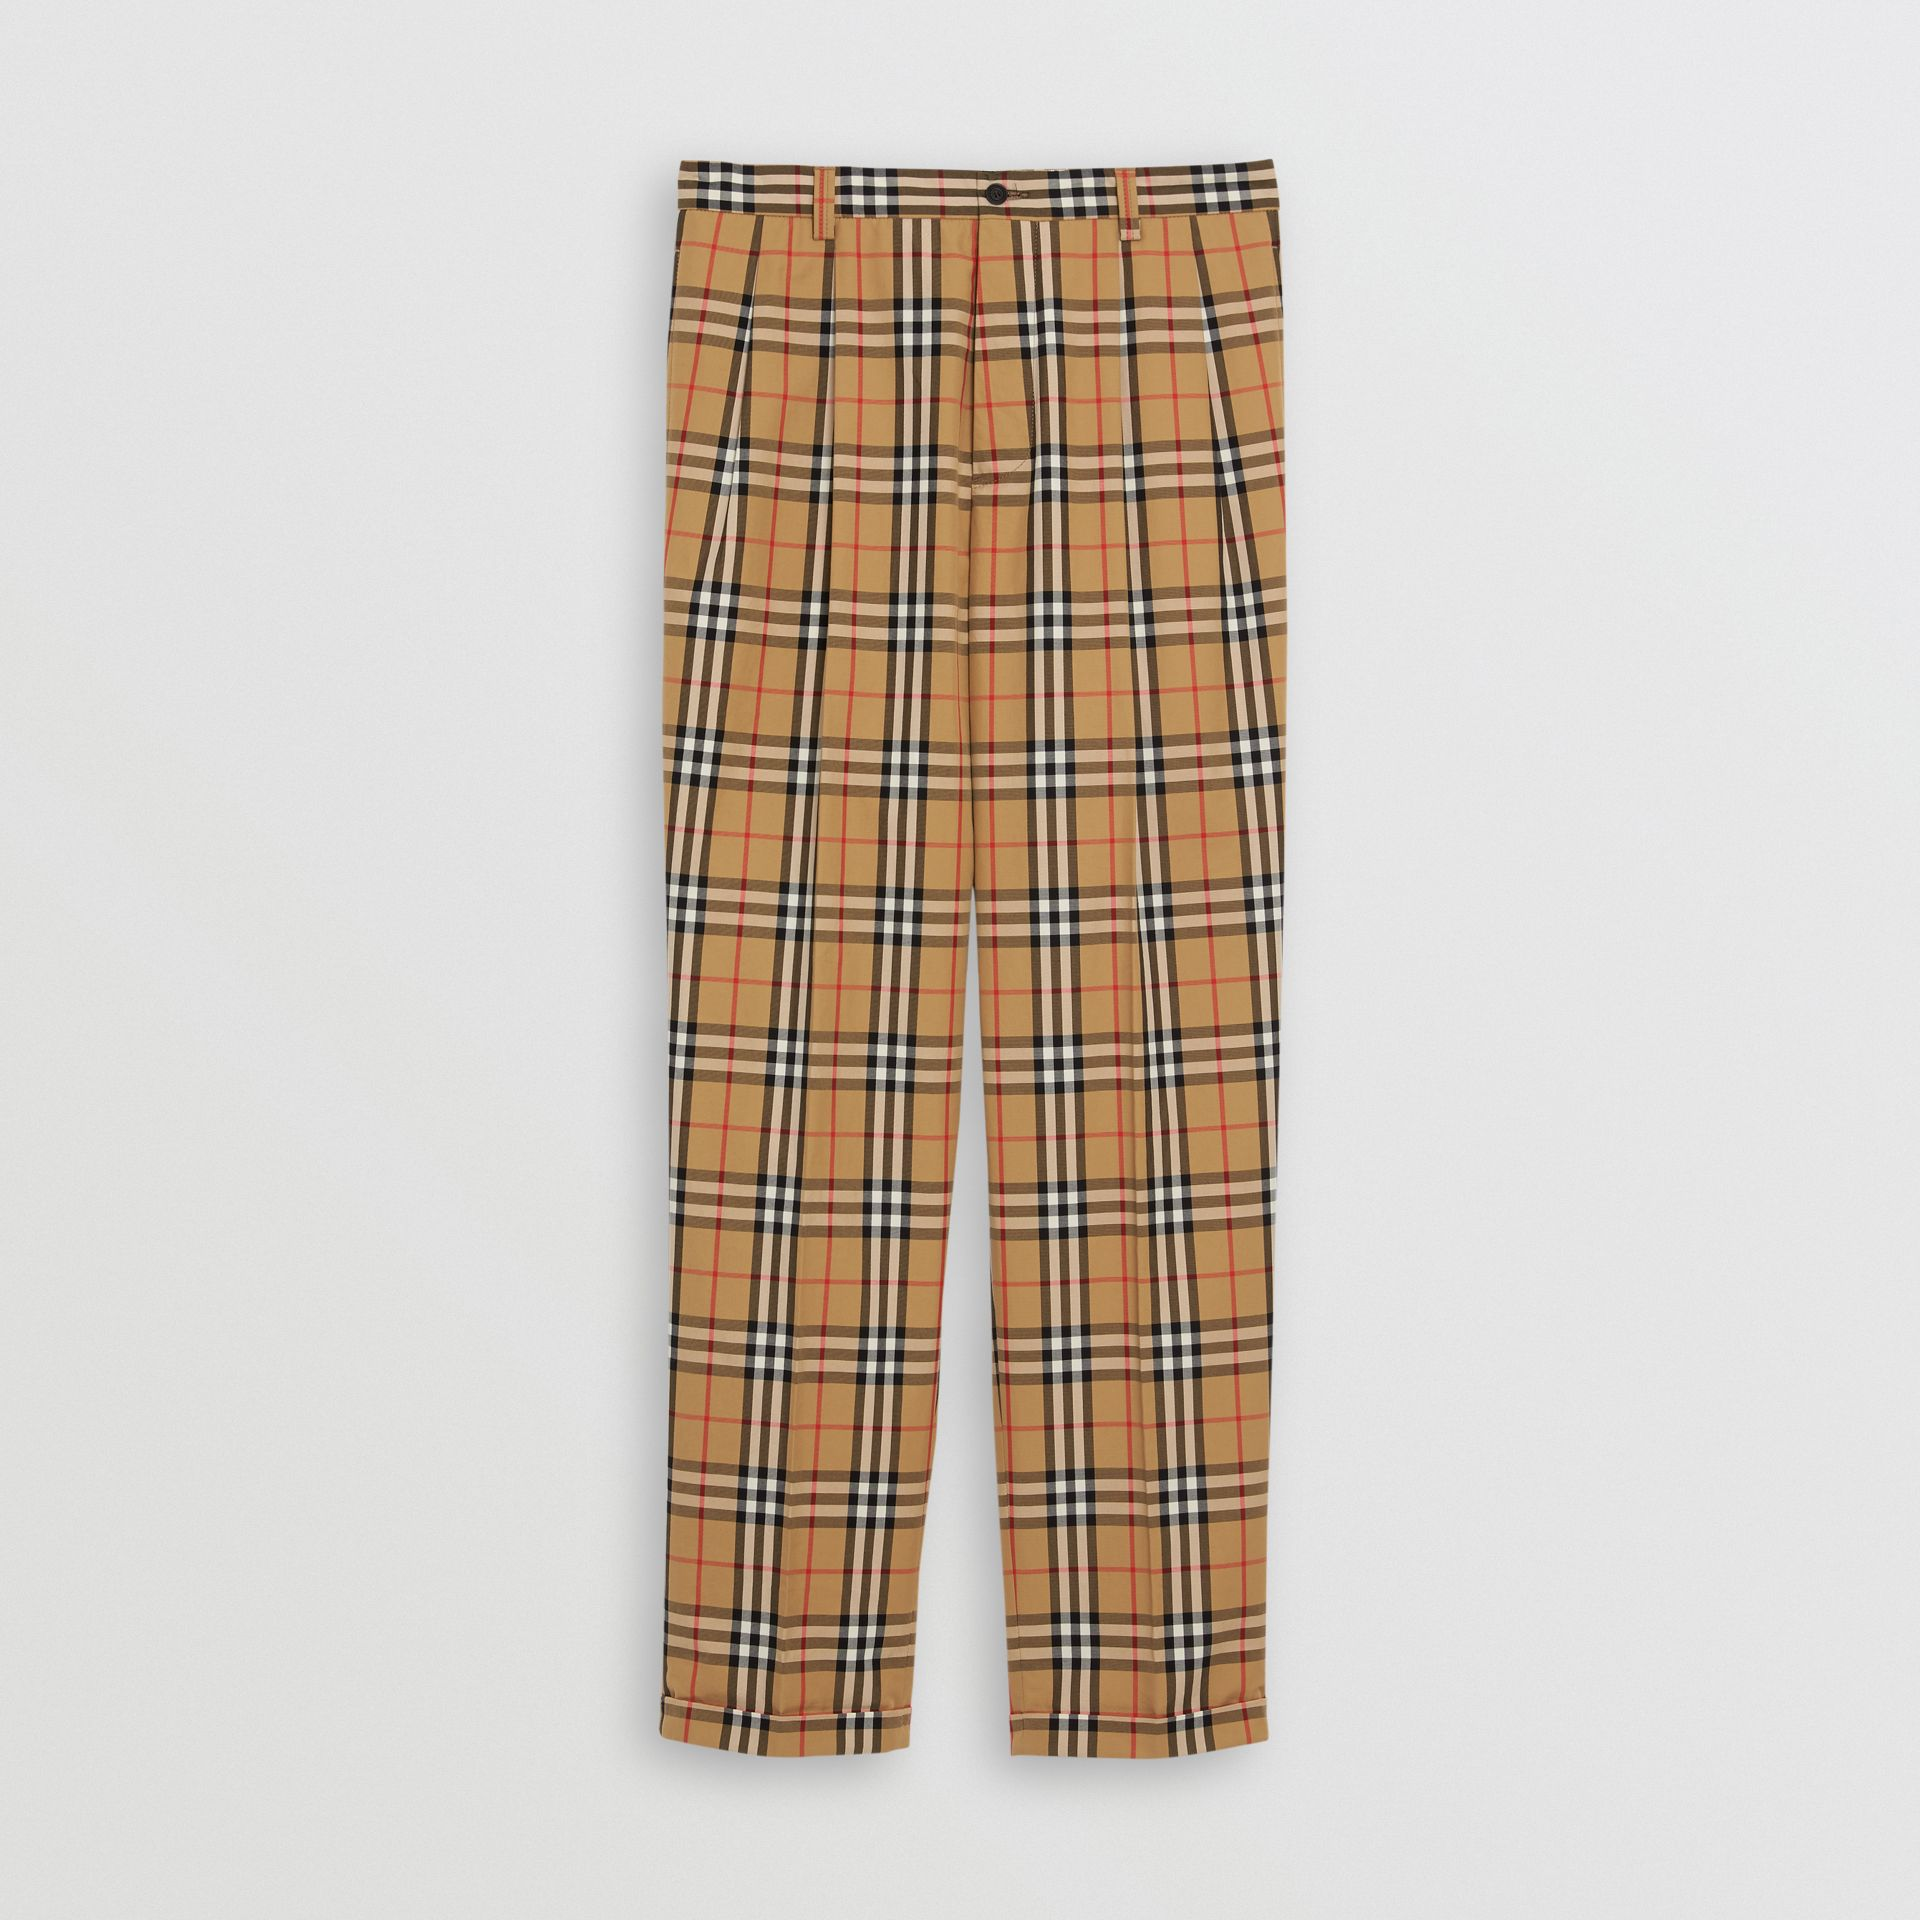 Pantalon en coton à motif Vintage check (Jaune Antique) - Homme | Burberry Canada - photo de la galerie 3